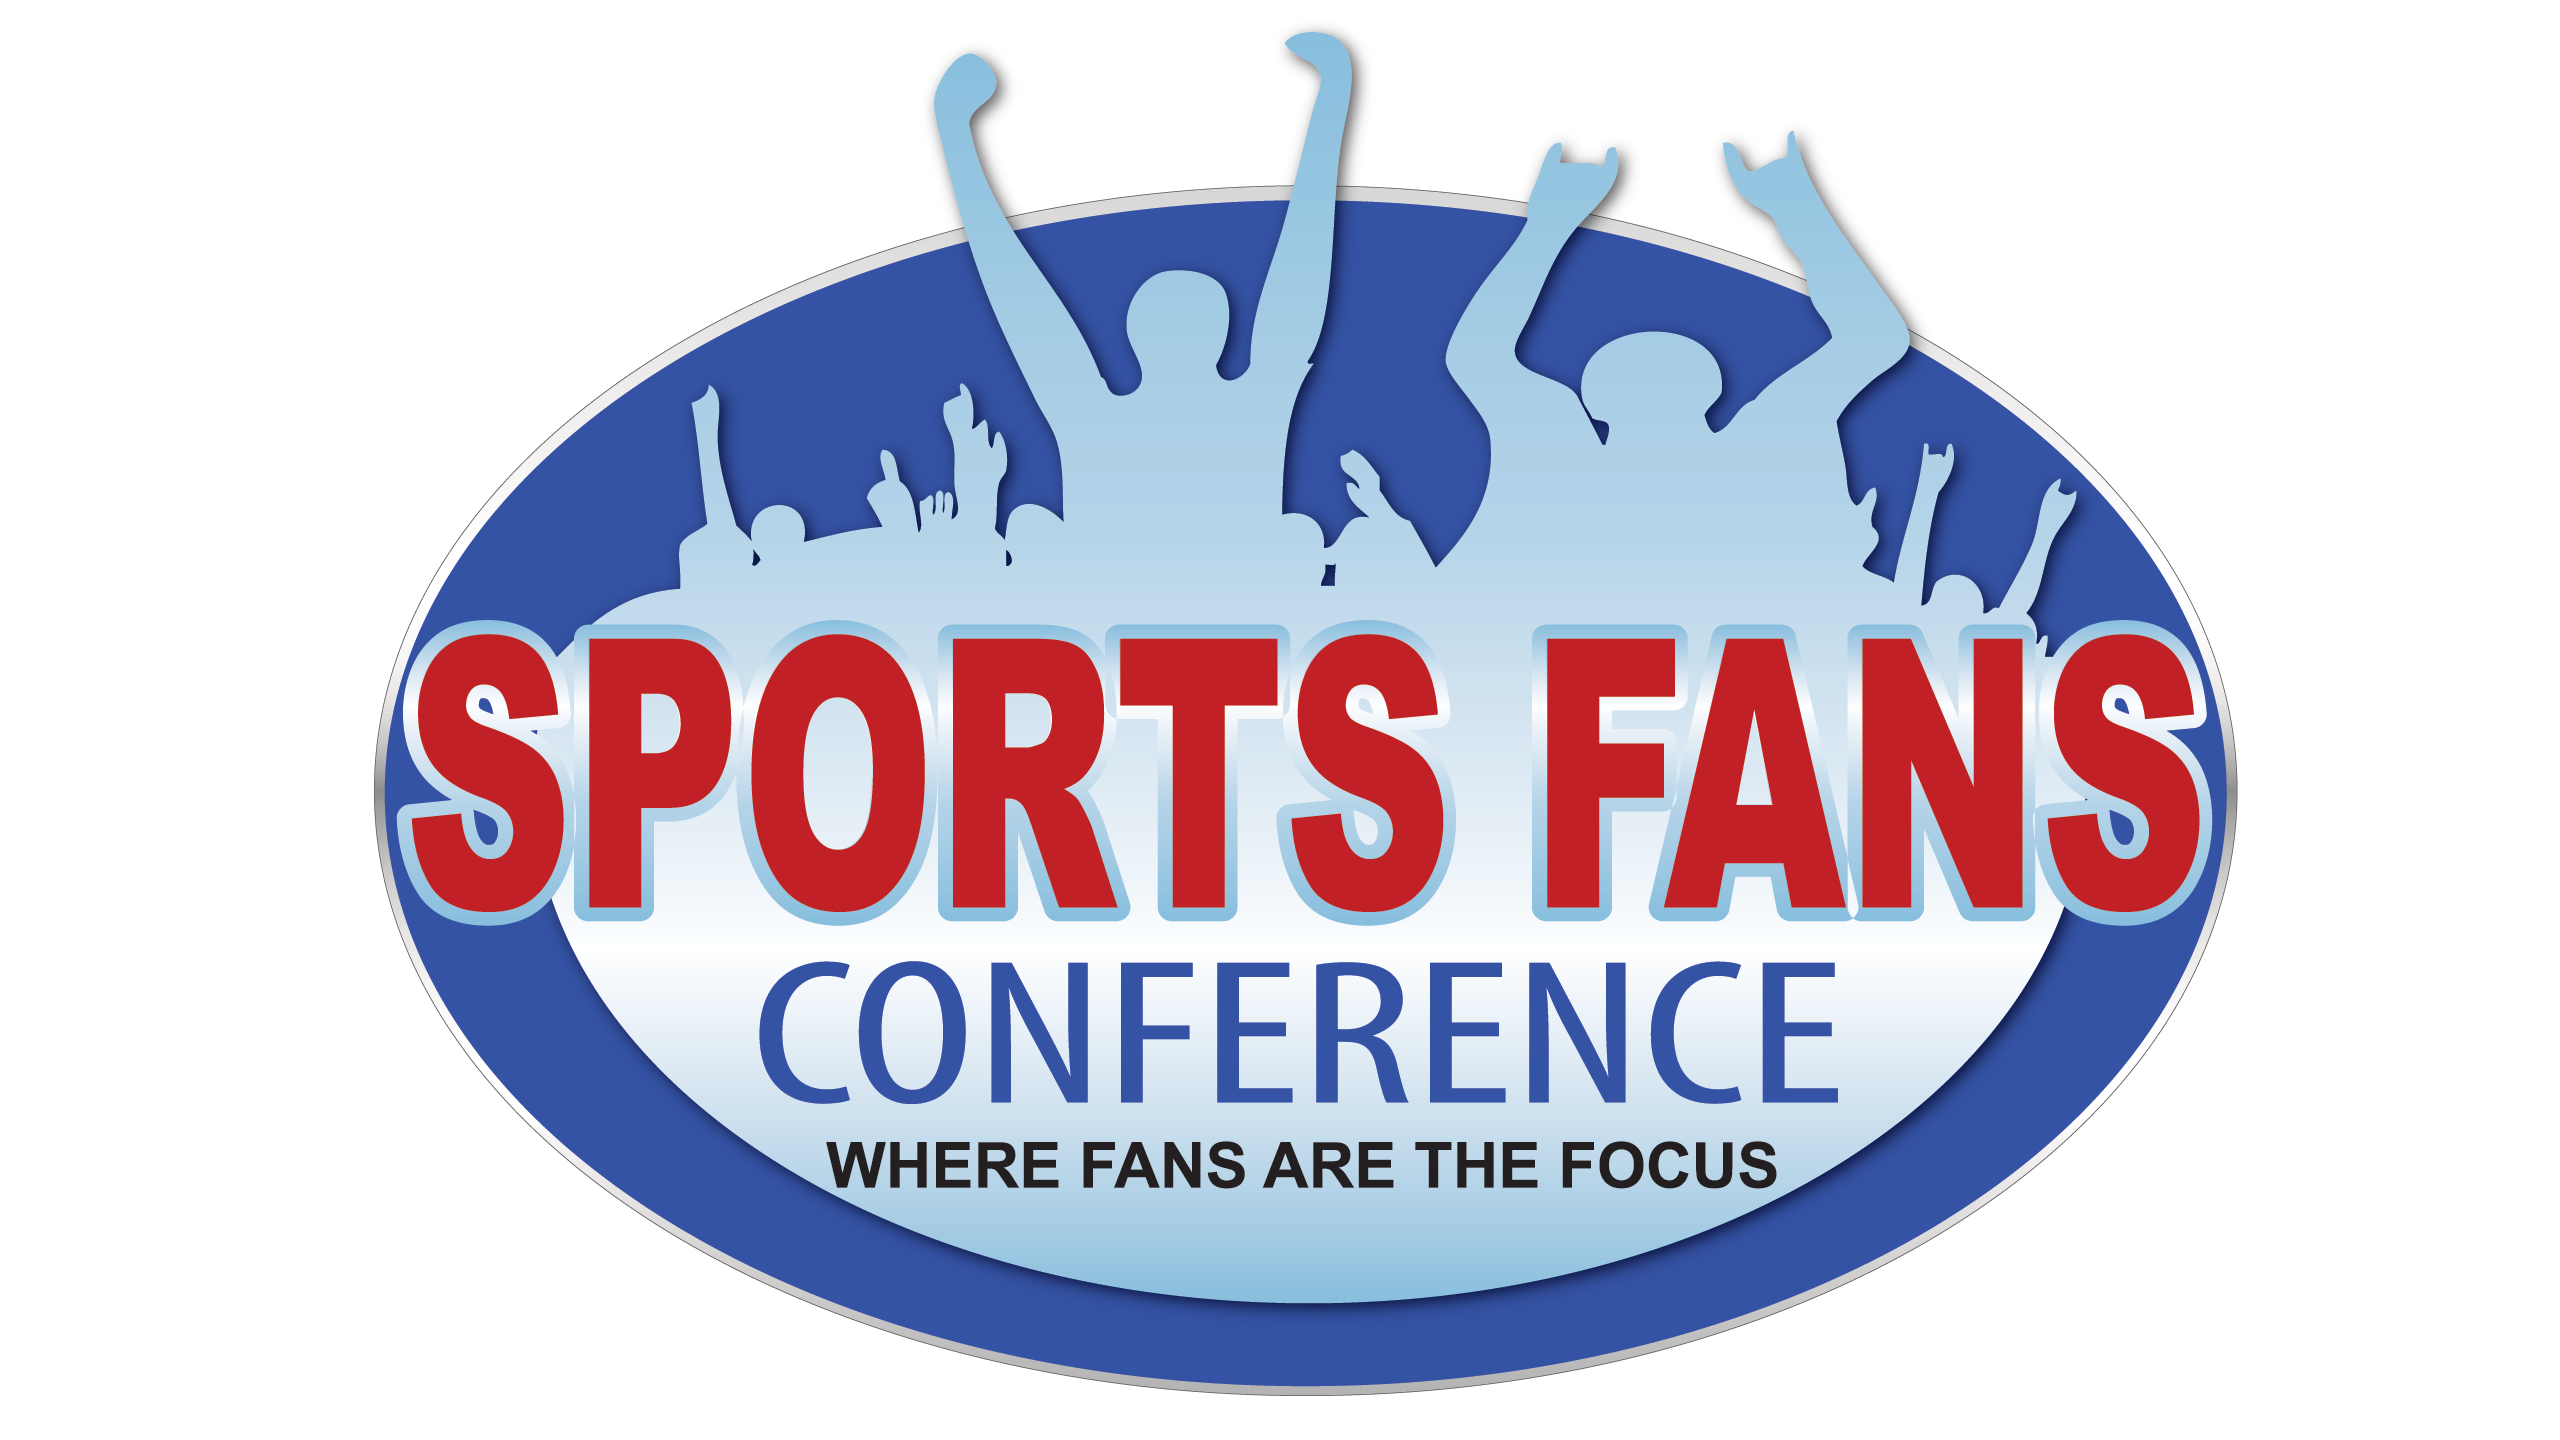 Sports Fans Conference